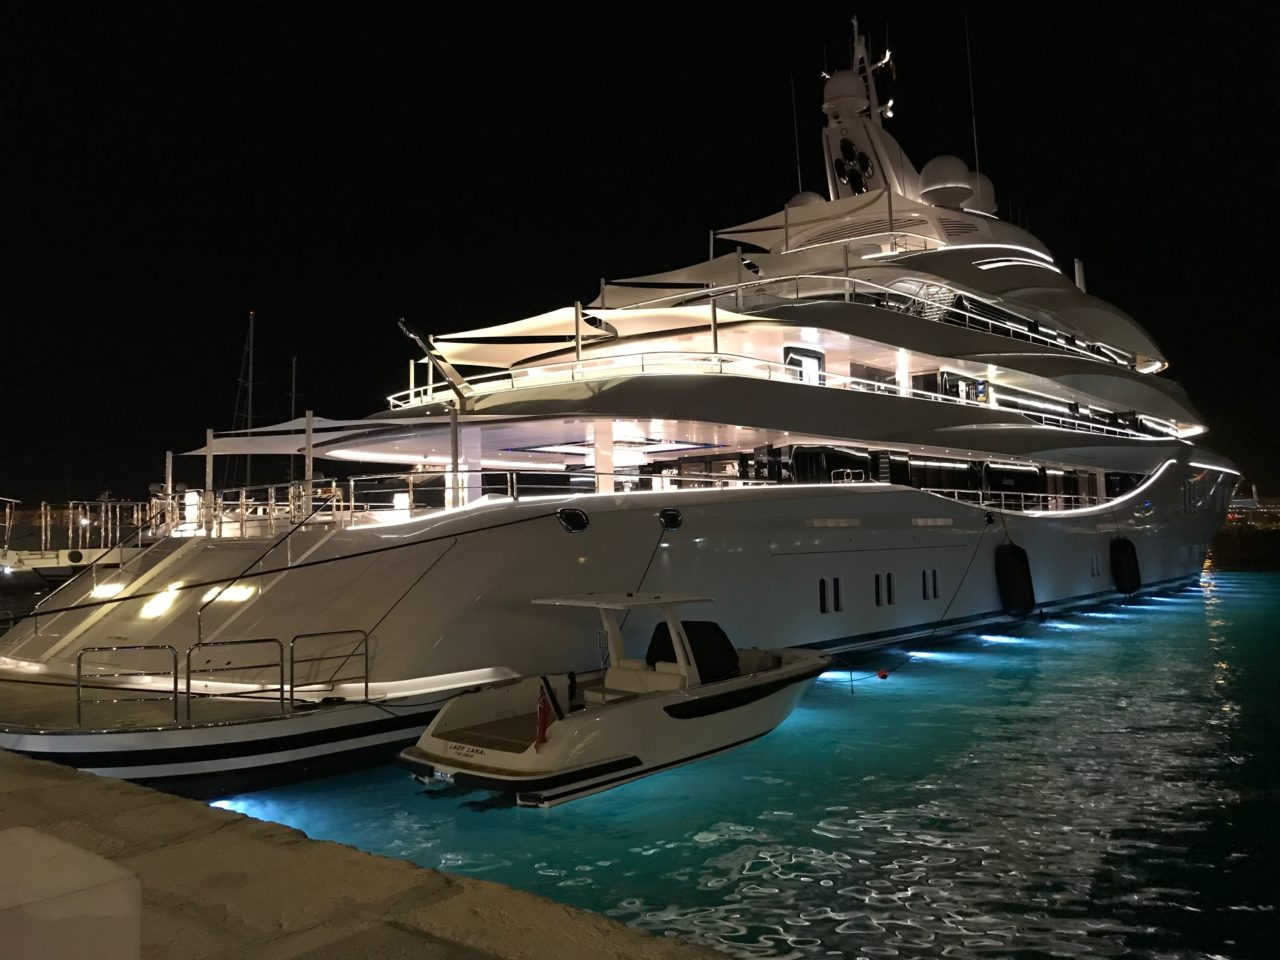 Luxury Yacht At The Dock In Ibiza City At Night